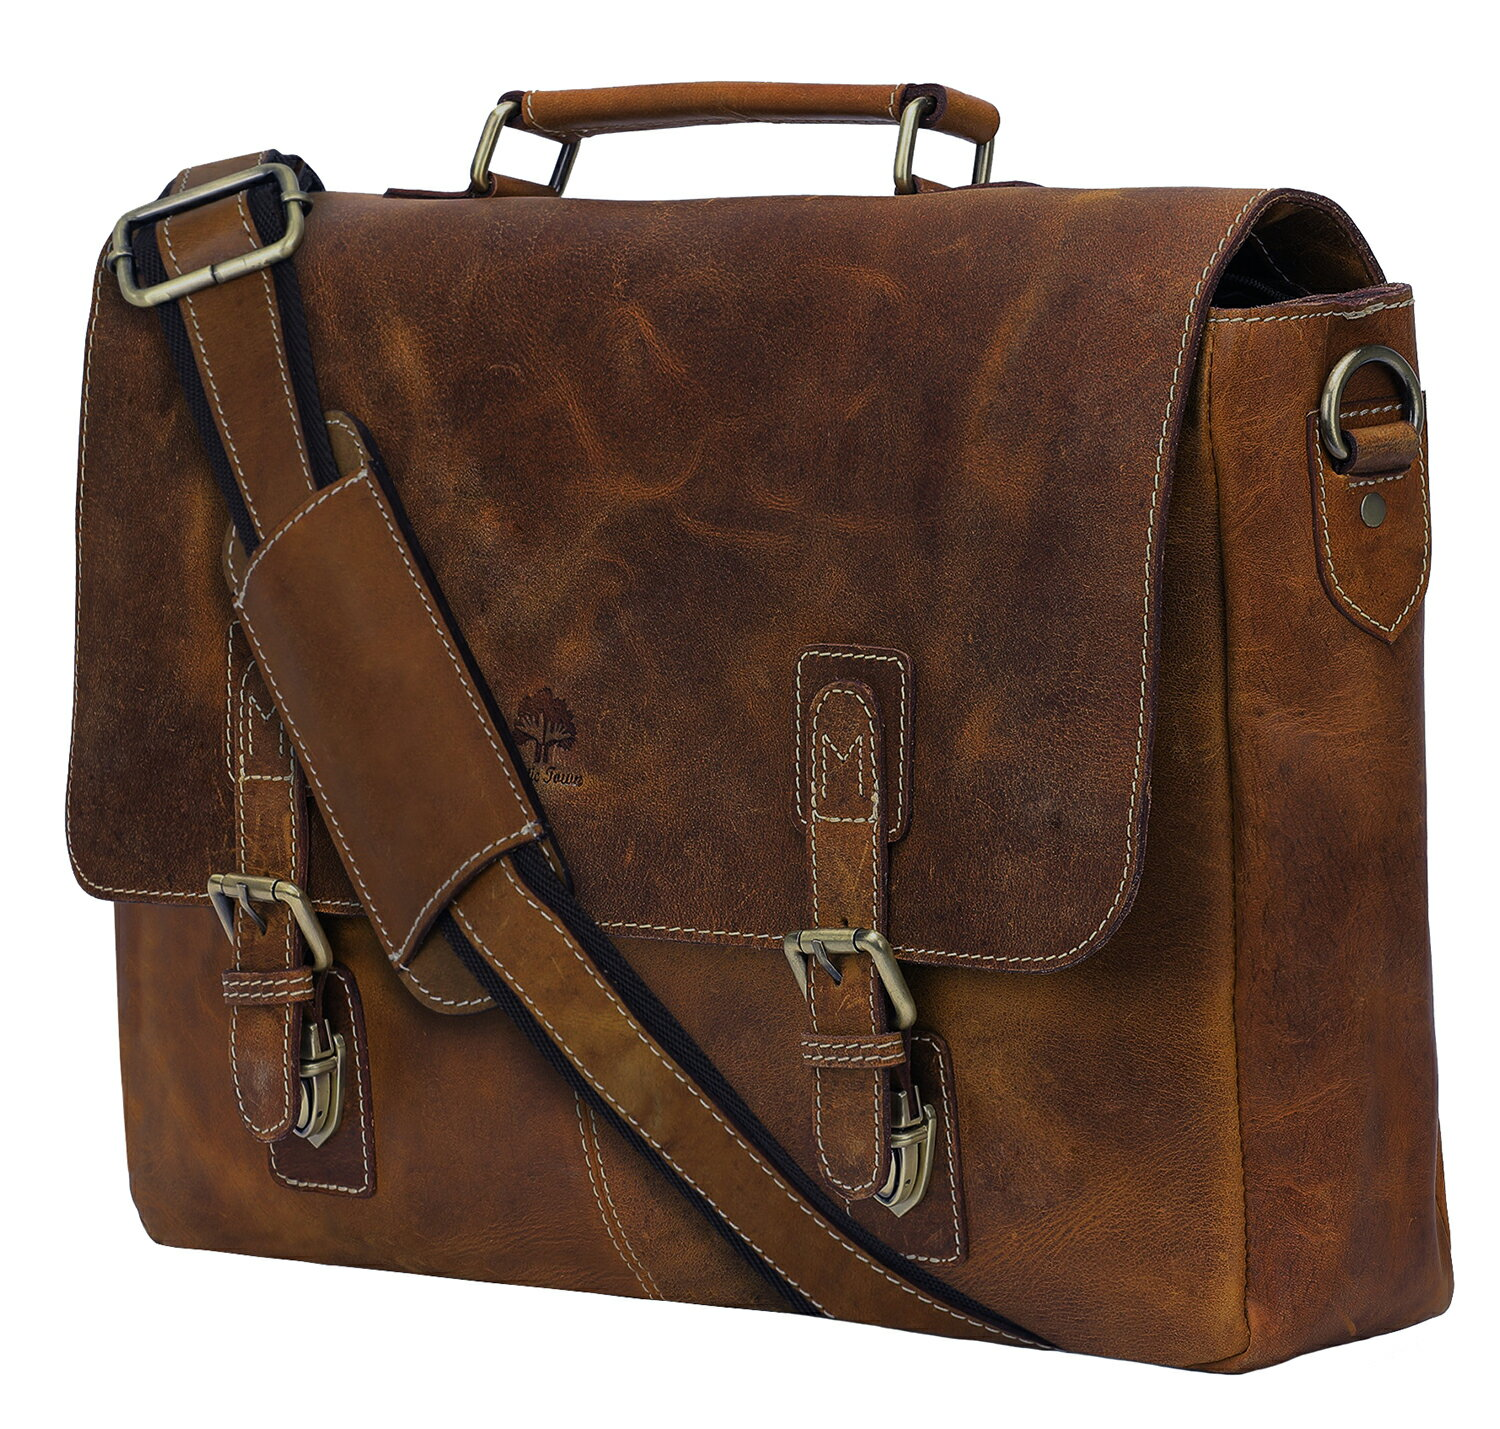 bf99ddbc59 16 inch Genuine Leather Briefcase Bag - Crossbody Laptop Satchel by Rustic  Town 0